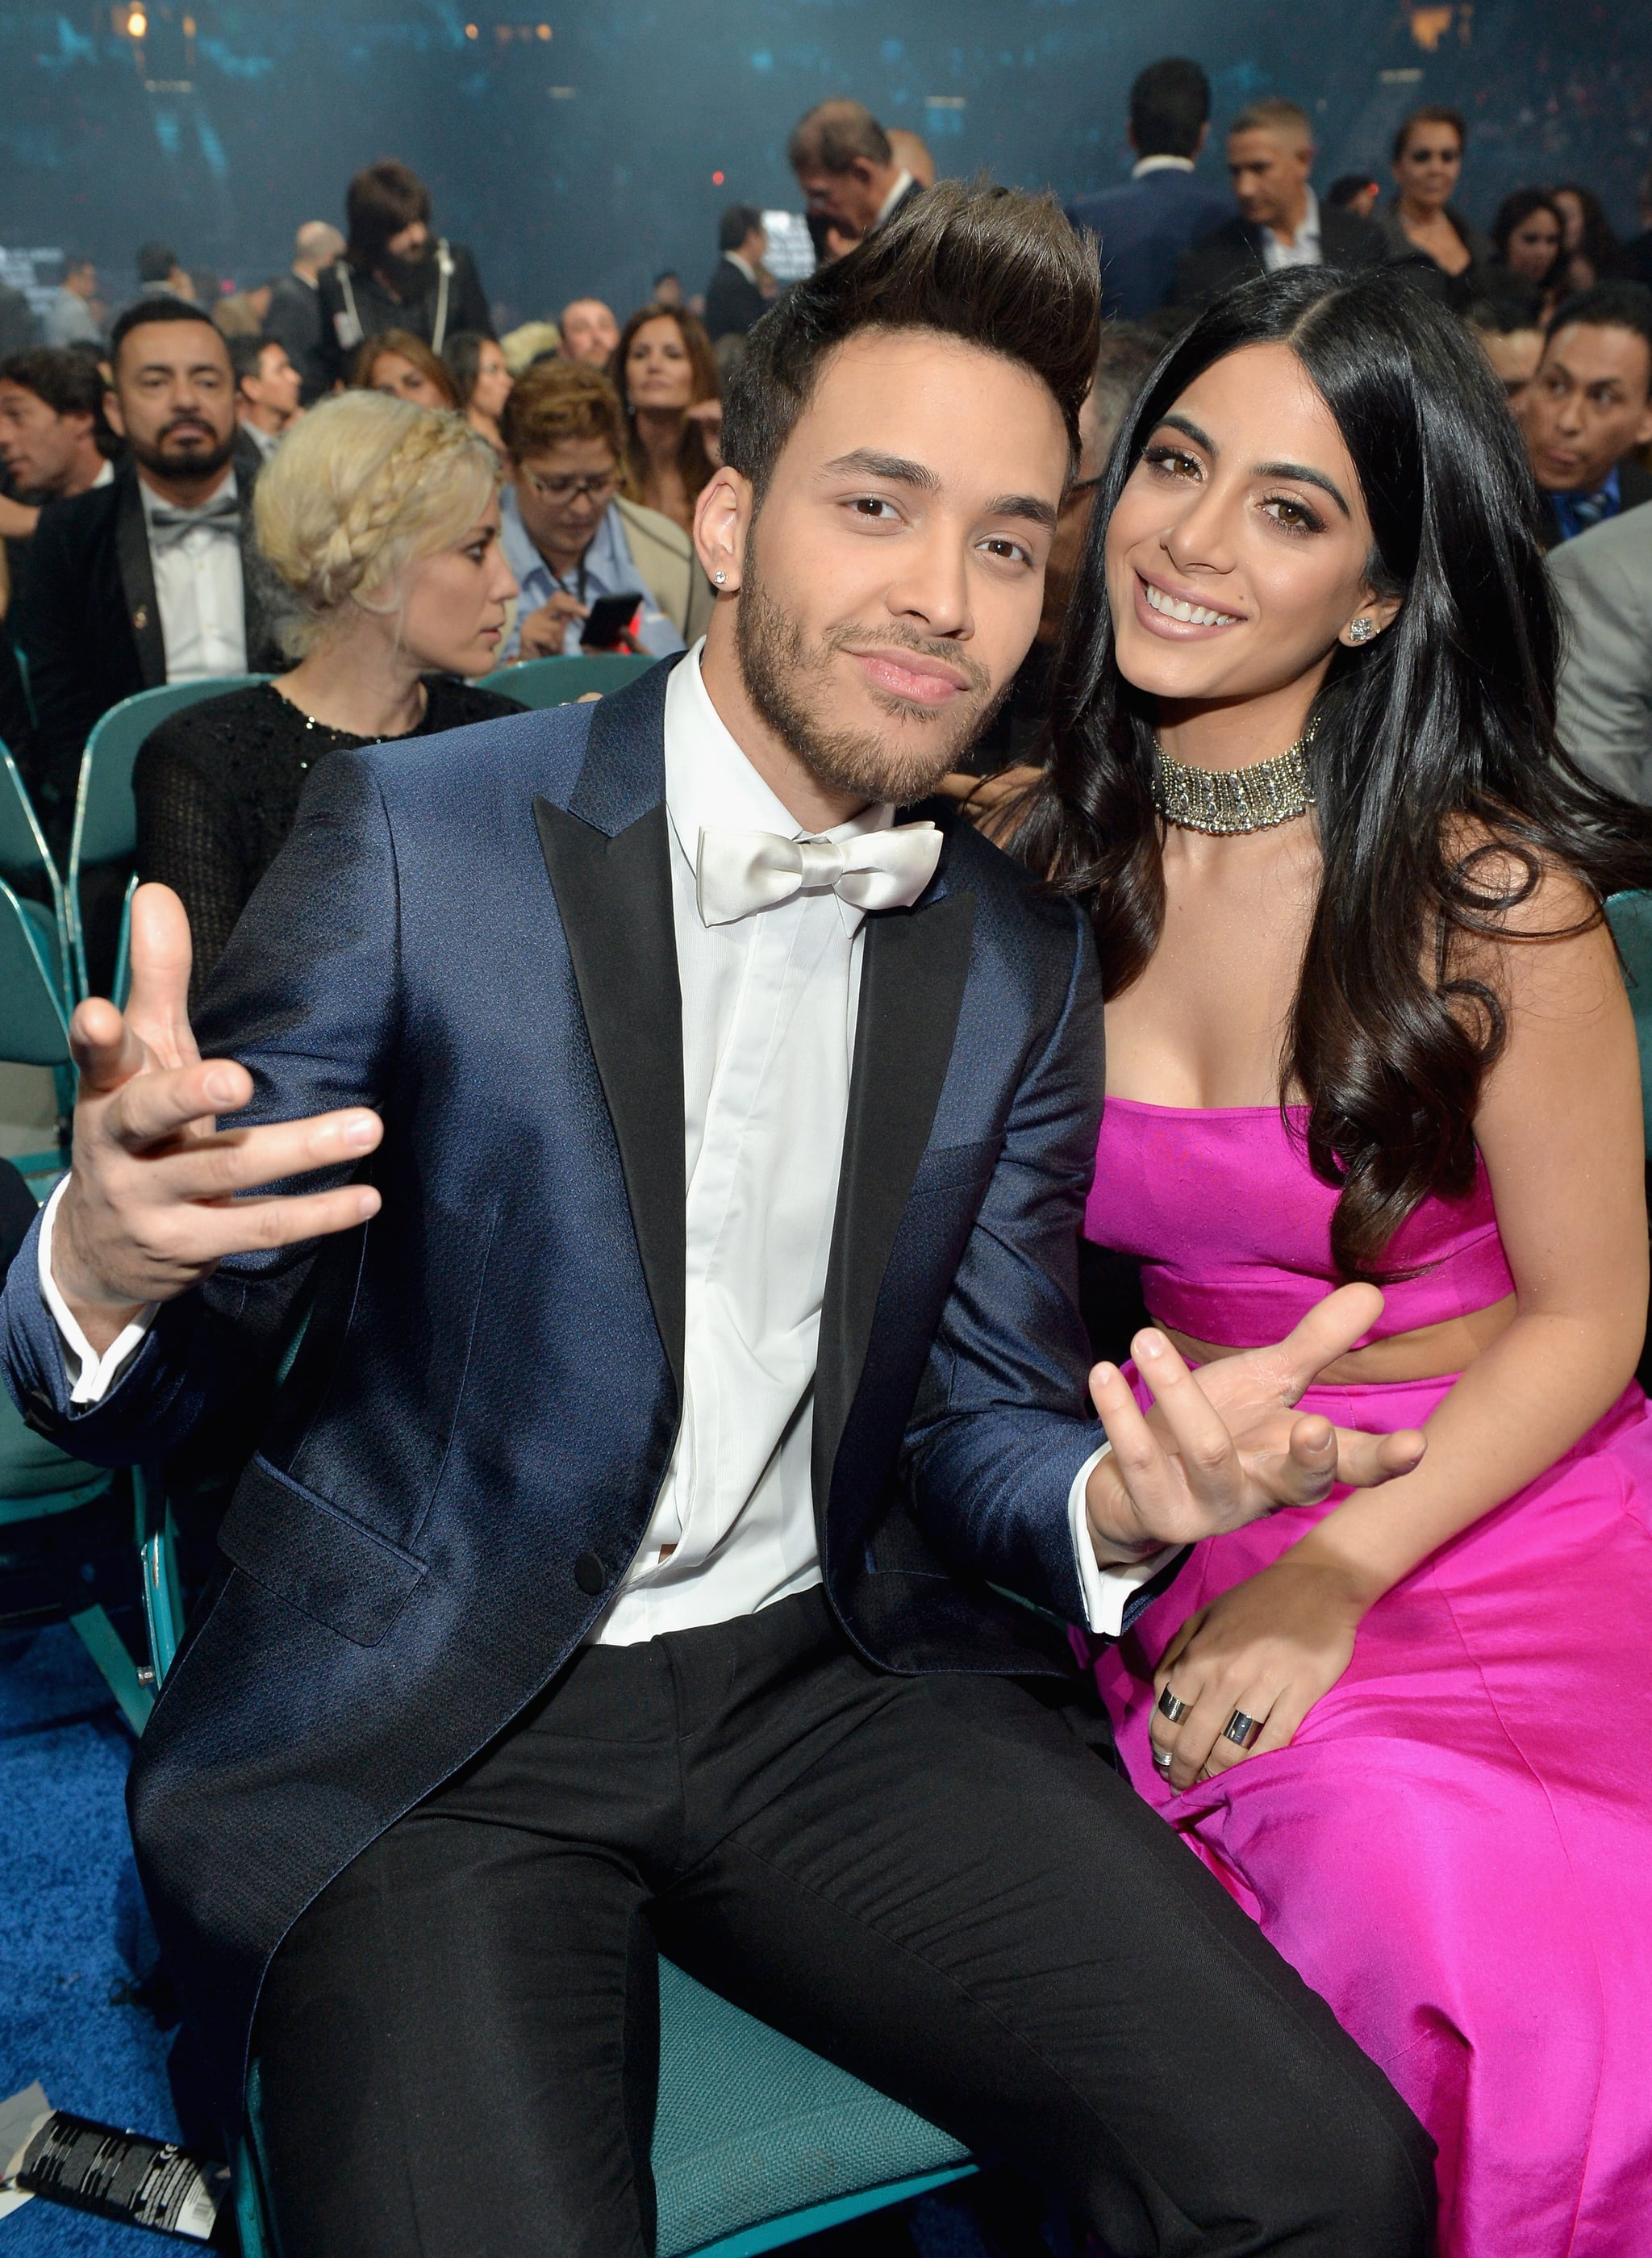 LAS VEGAS, NV - NOVEMBER 19:  Actress Emeraude Toubia (R) and recording artist Prince Royce attend the 16th Latin GRAMMY Awards at the MGM Grand Garden Arena on November 19, 2015 in Las Vegas, Nevada.  (Photo by Rodrigo Varela/WireImage)